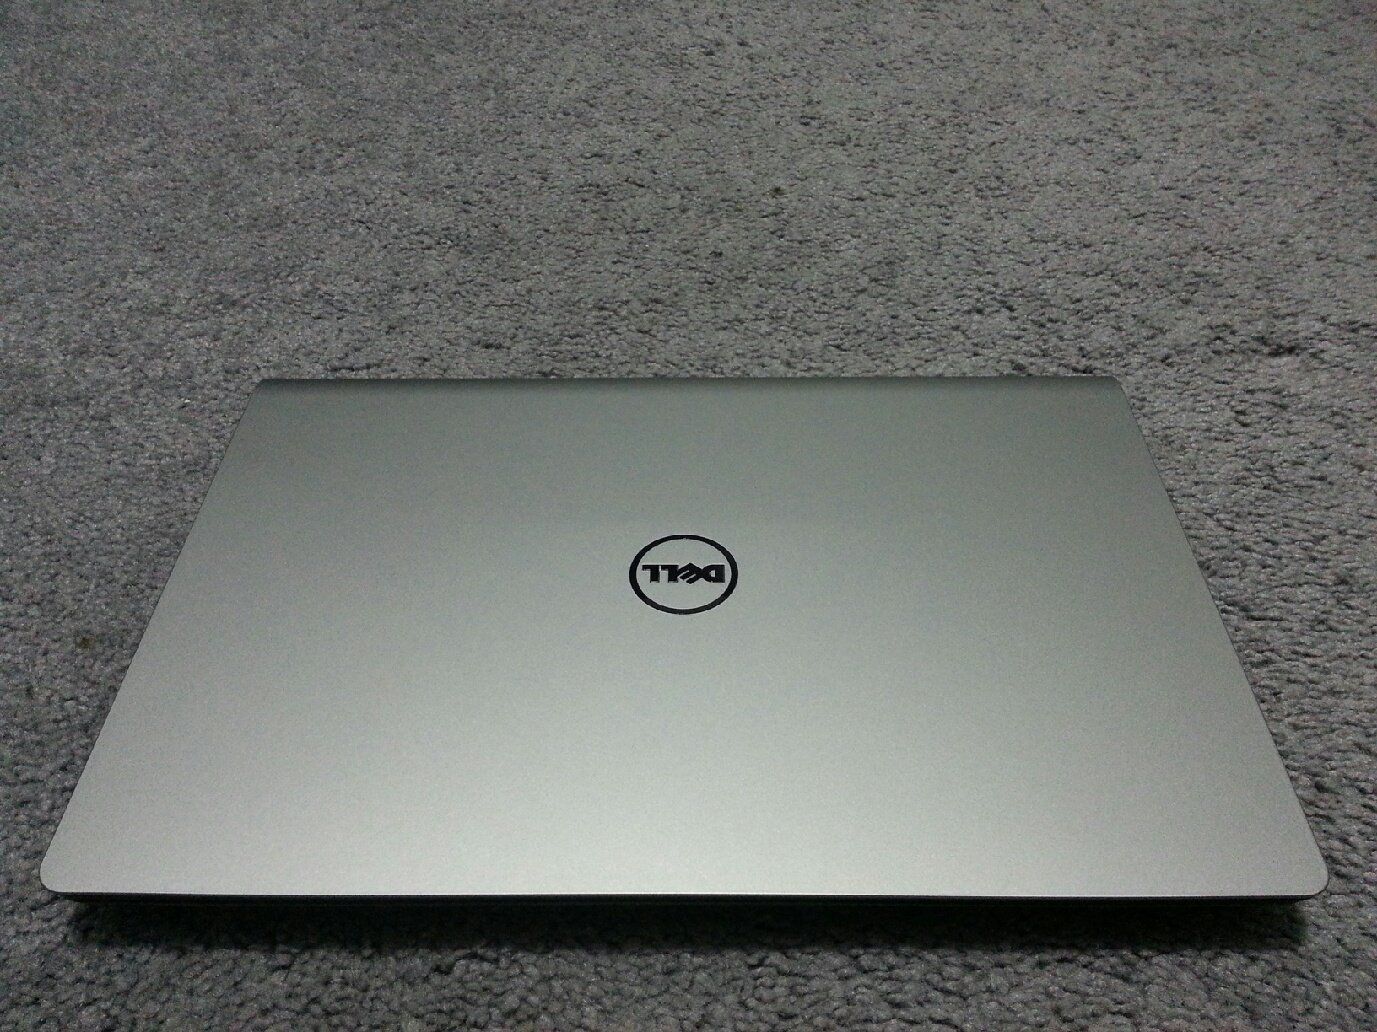 Dell-Inspiron-Ultrabook-11-6-Touch-screen-Laptop-I3135-3750slv-Silver